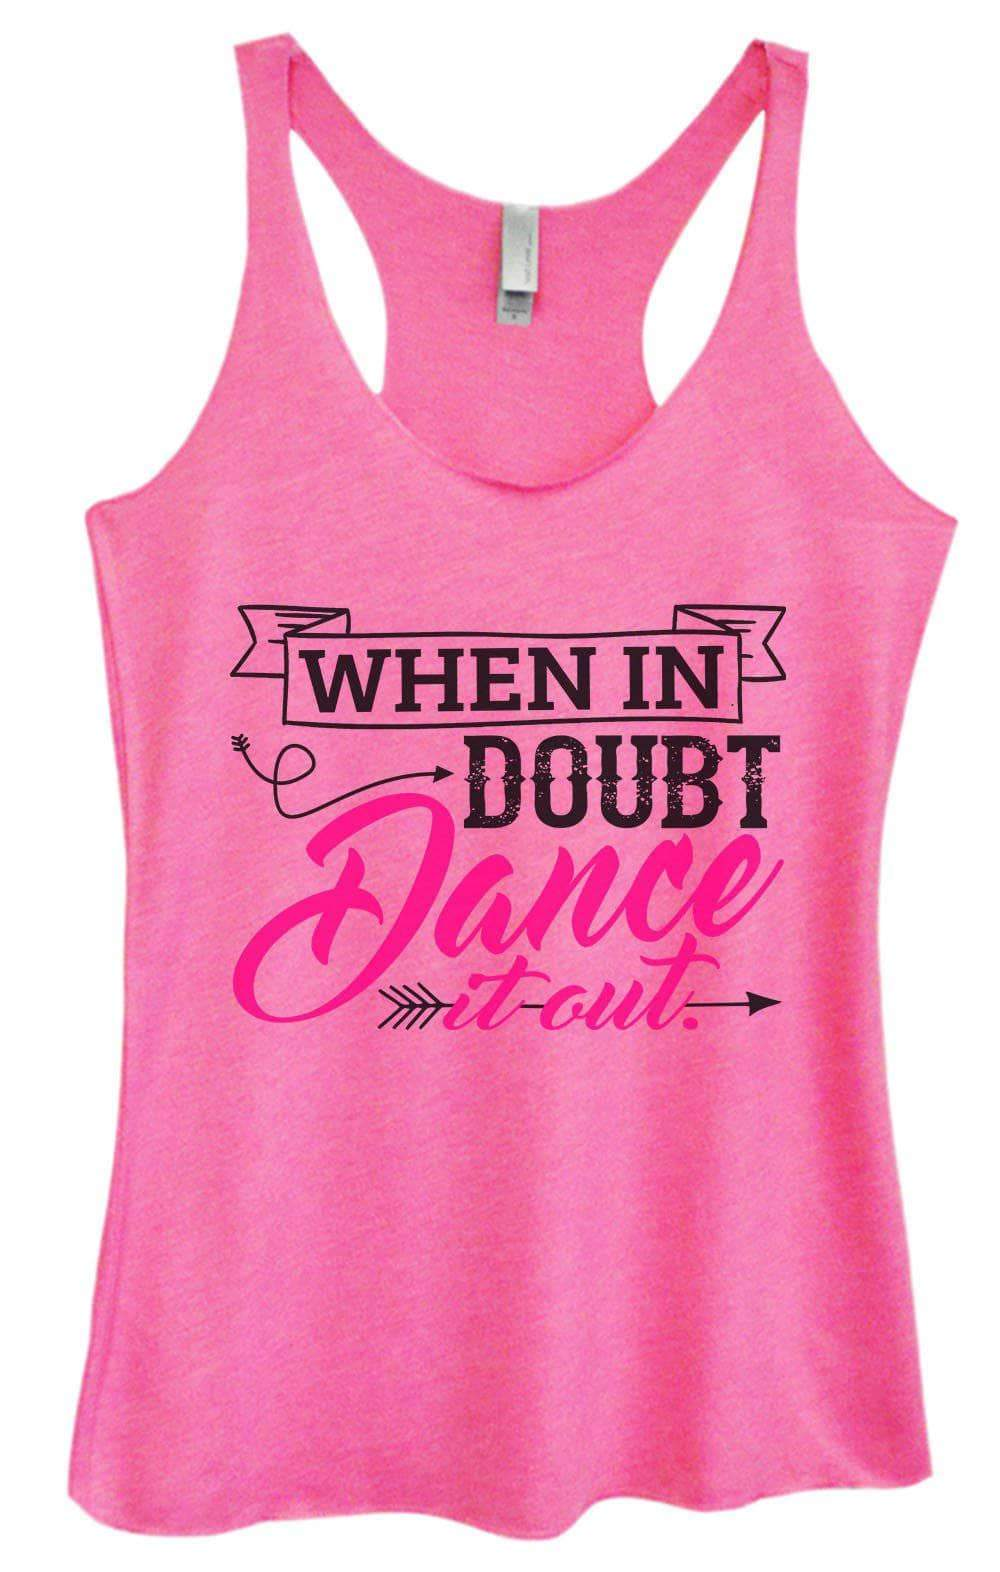 Womens Tri-Blend Tank Top - When In Doubt Dance It Out Small Womens Tank Tops Vintage Pink